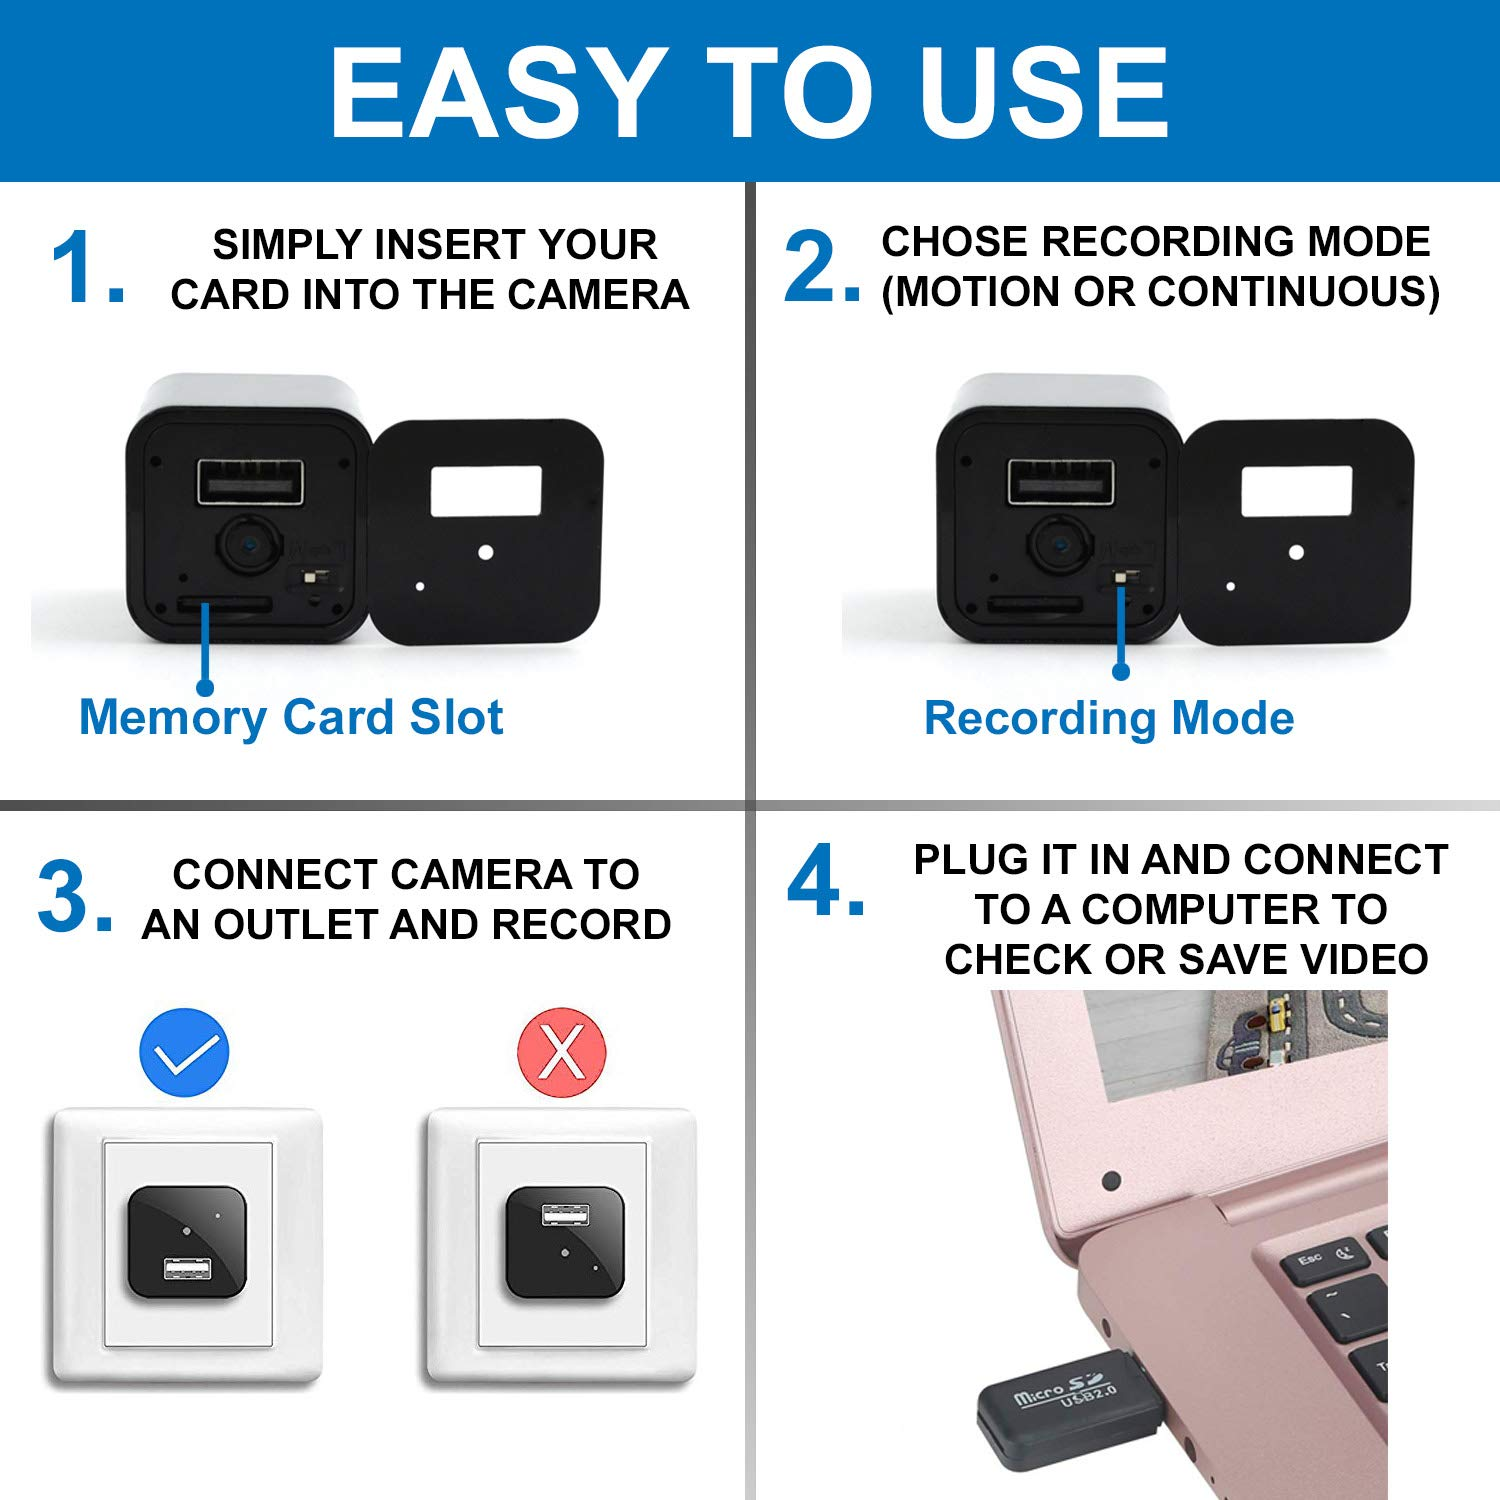 USB Hidden Camera - Spy Cam Charger HD 1080 P with Motion Detection and microSD Card Included - Nanny Cam Premium Pack - Mini Spy Camera No Wi-Fi Needed Newest Edition 2019 - Indoor Security Camera